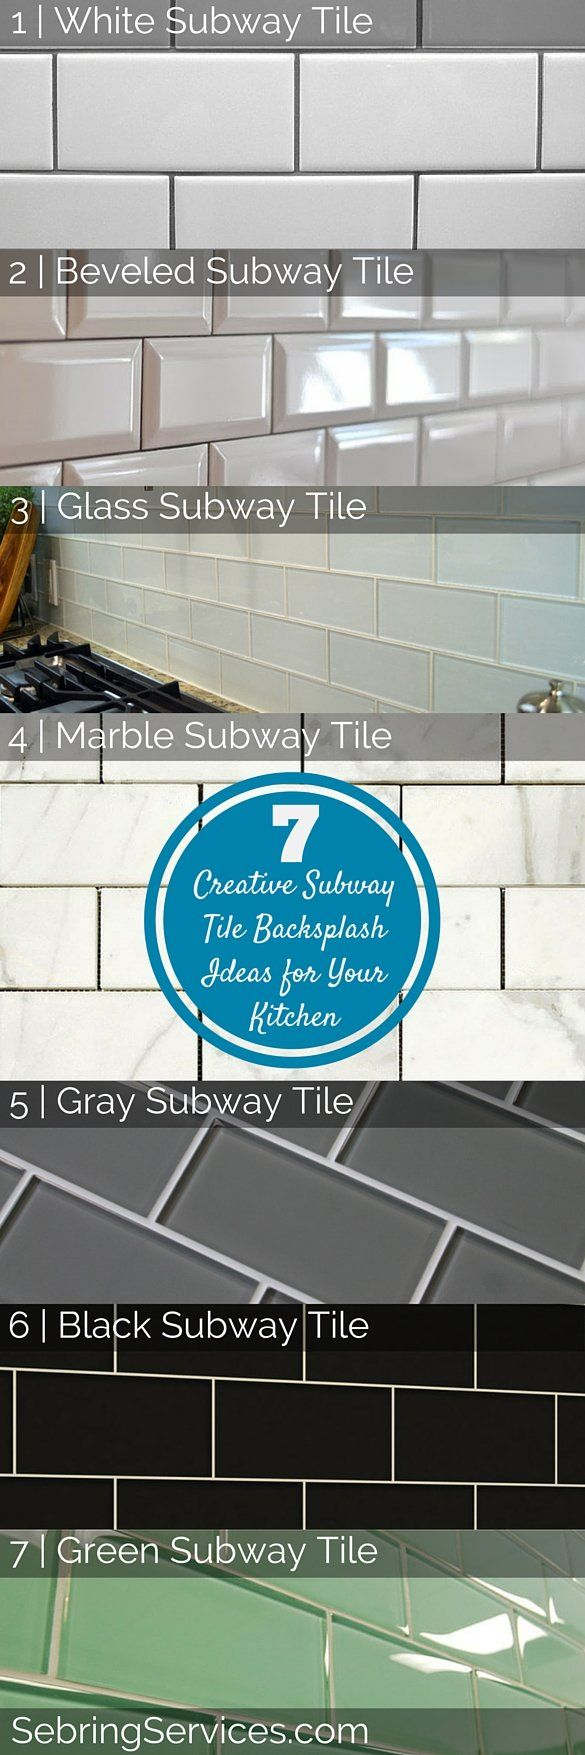 7 Creative Subway Tile Backsplash Ideas for Your Kitchen | Baldosa ...